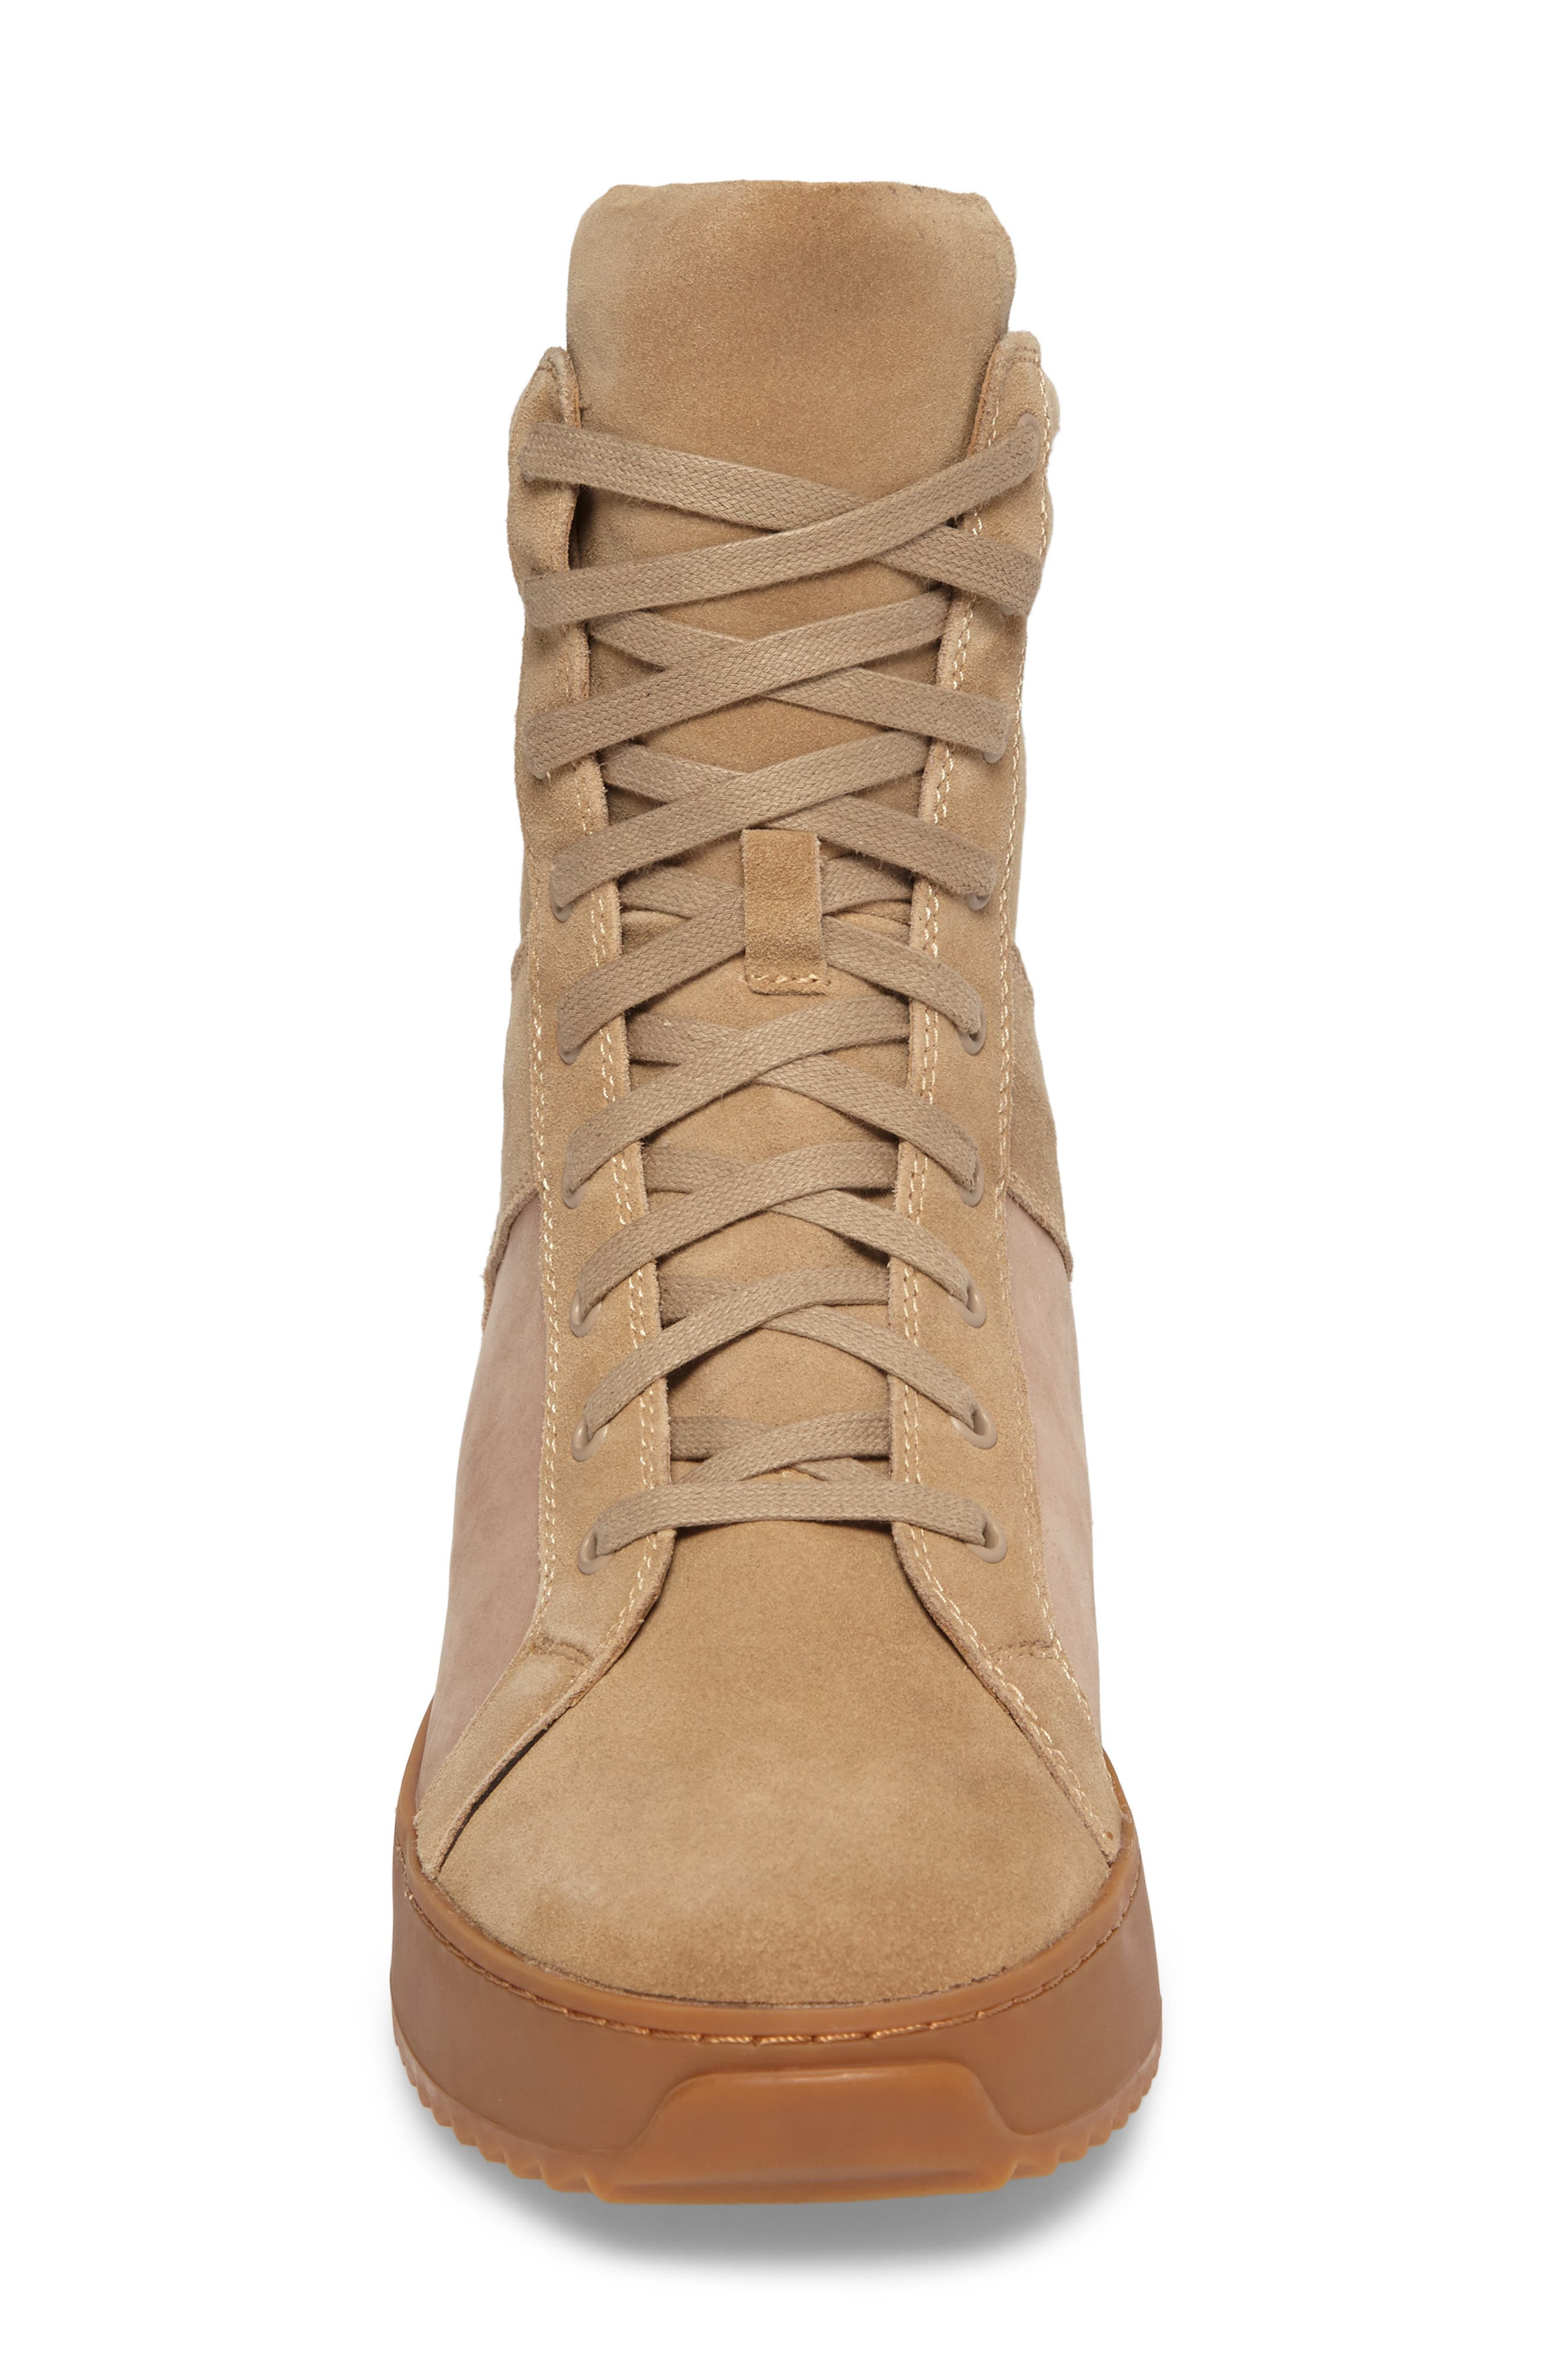 Shane Sneaker,                             Alternate thumbnail 4, color,                             Sand Suede